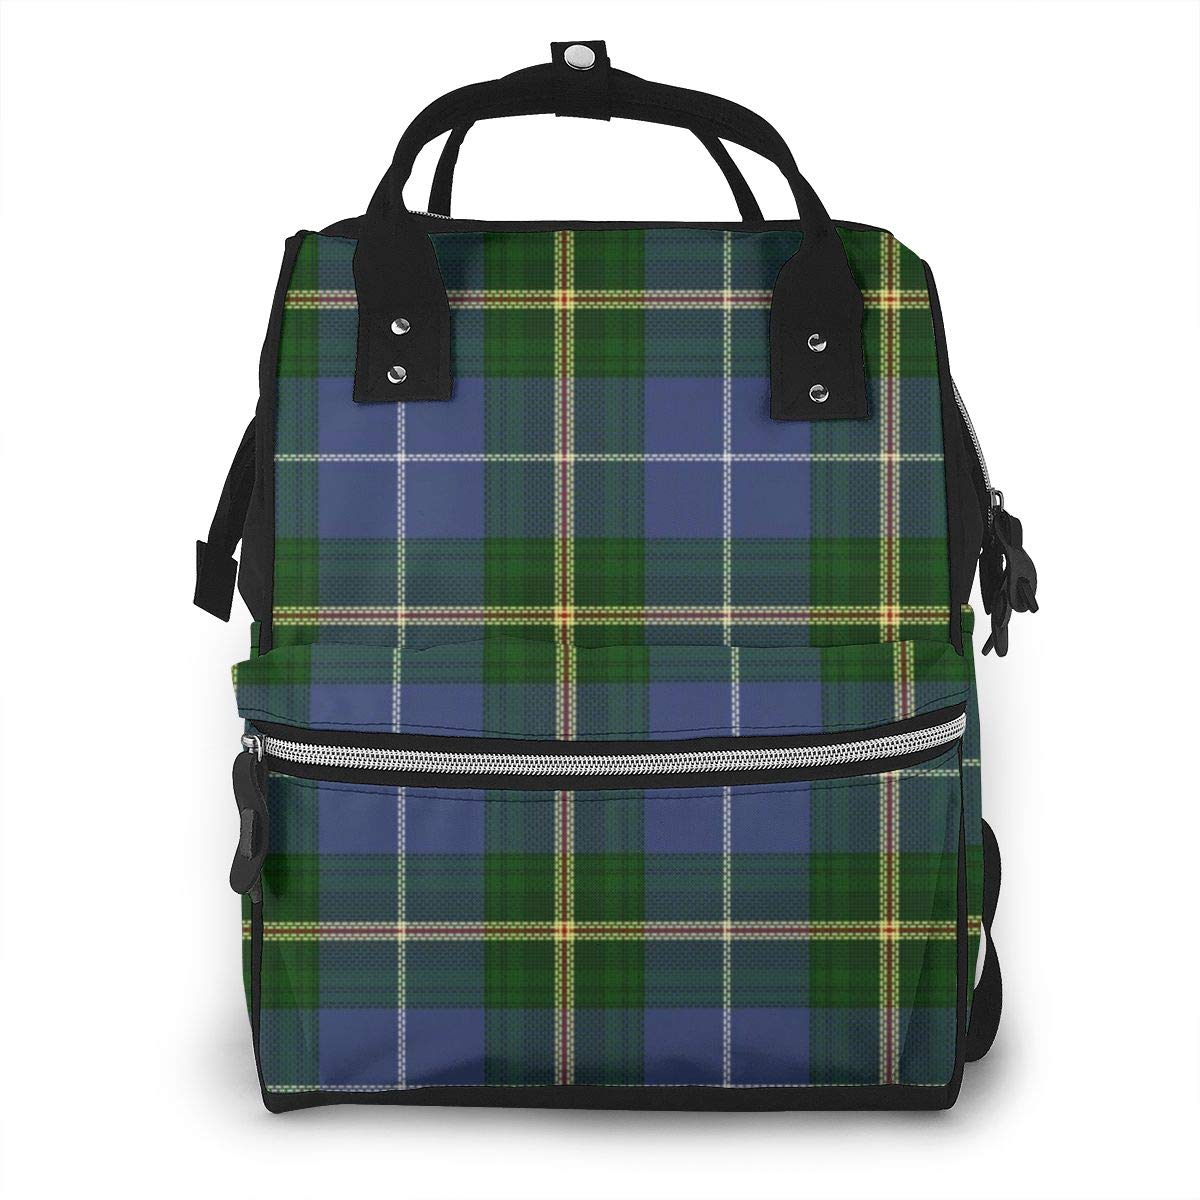 Blue Nova Scotia Tartan Plaid Diaper Bag Backpack Waterproof Multi-Function Baby Changing Bags Maternity Nappy Bags Durable Large Capacity for Mom Dad Travel Baby Care